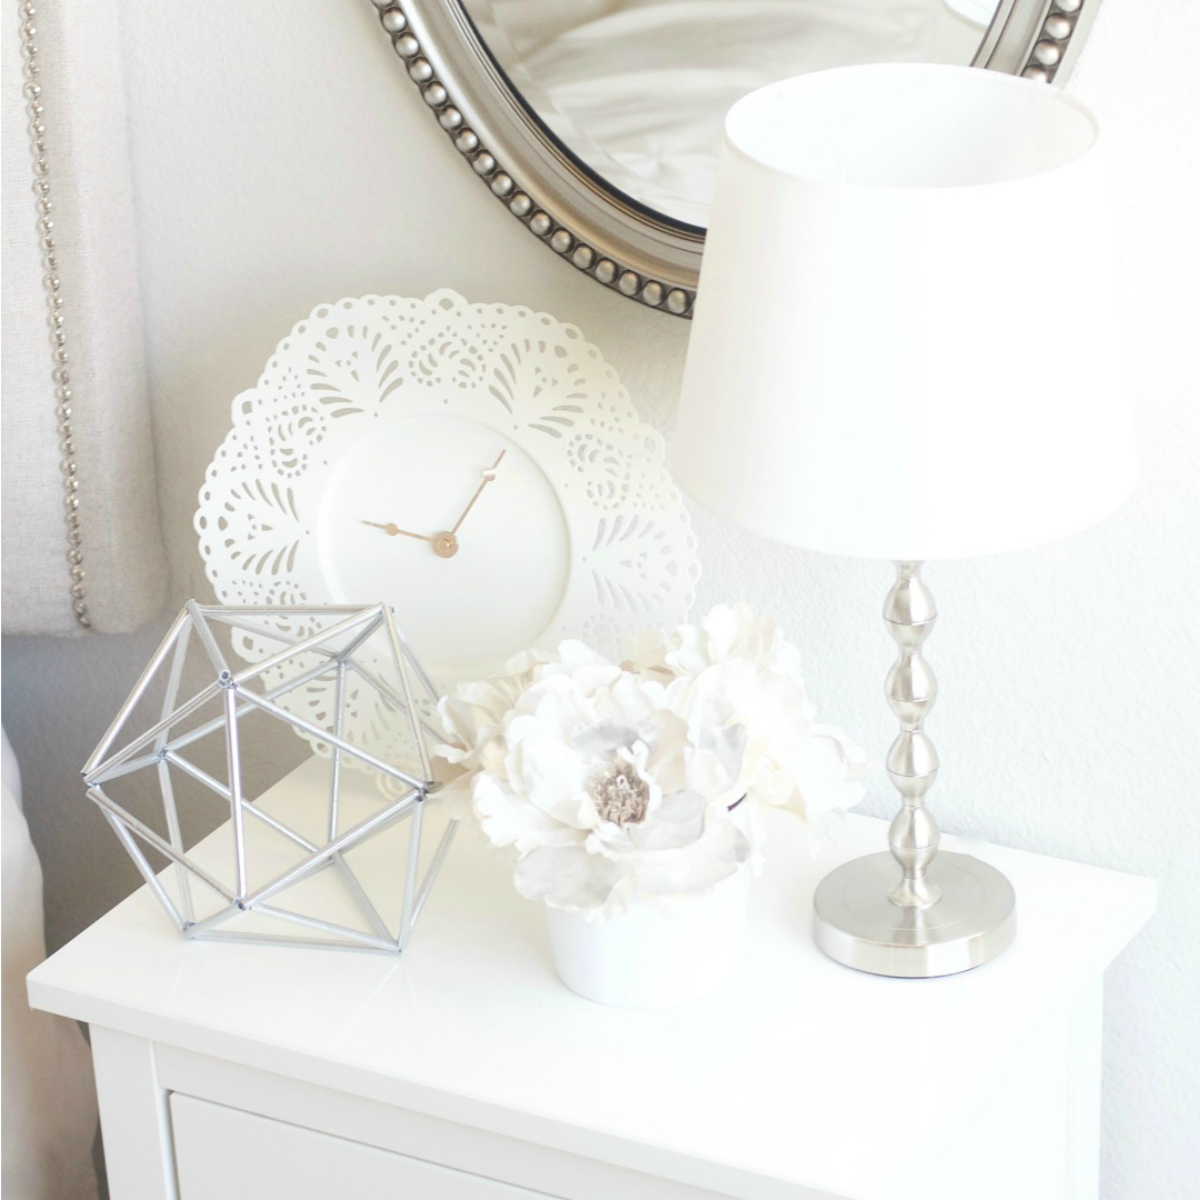 nightstand & decor on a budget - sincerely jean Nightstand Decor